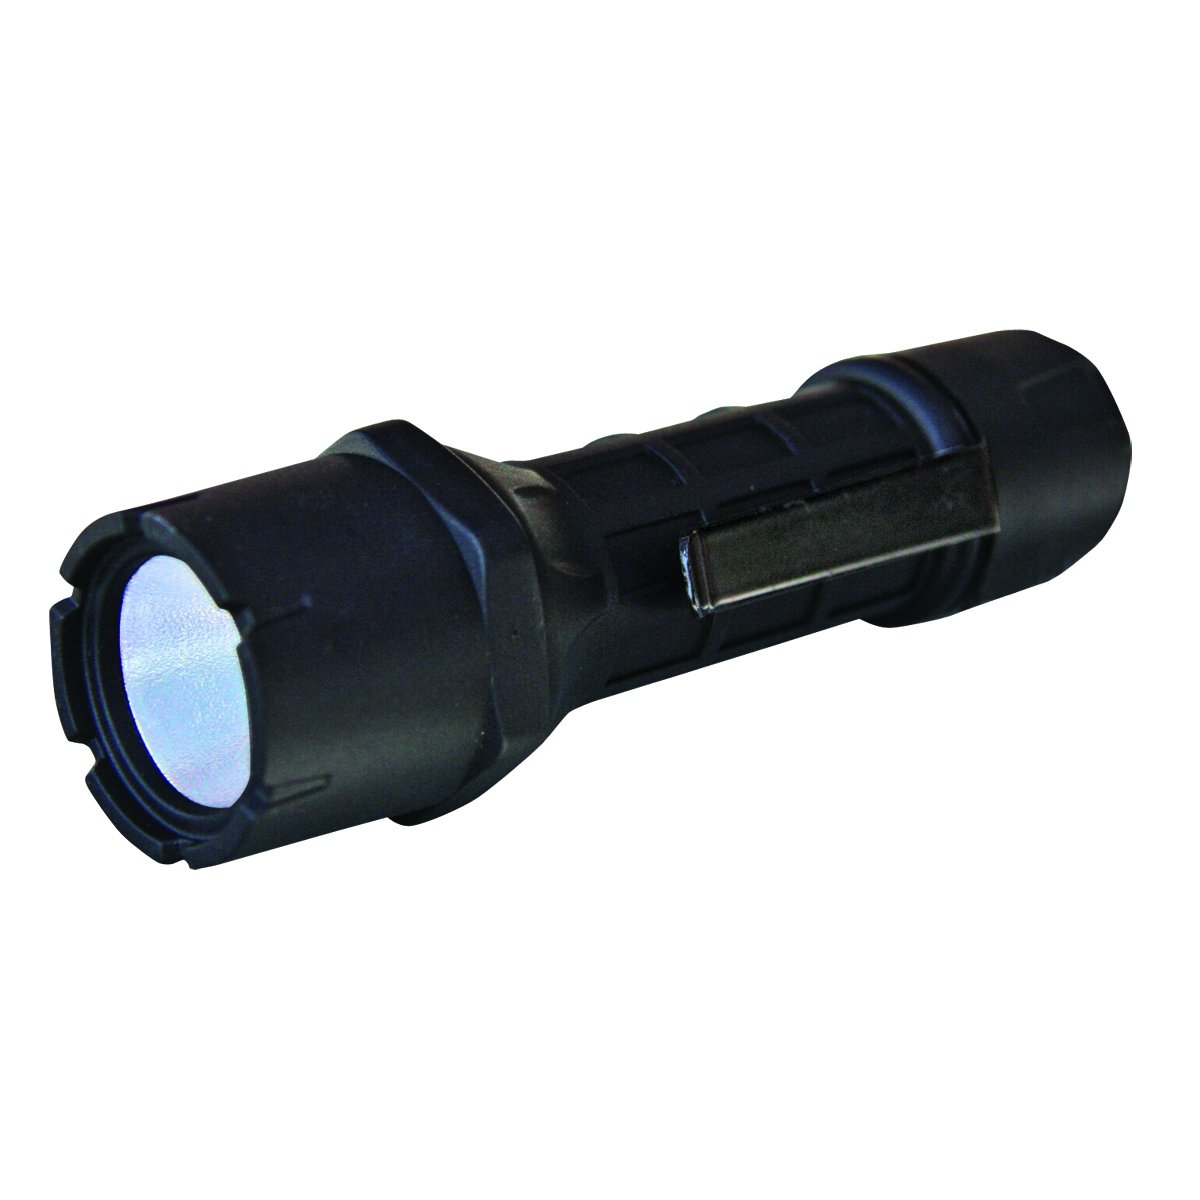 Voltec 08-00618 3W Tactical LED Flashlight, IP66 Rating, 120 Lumens